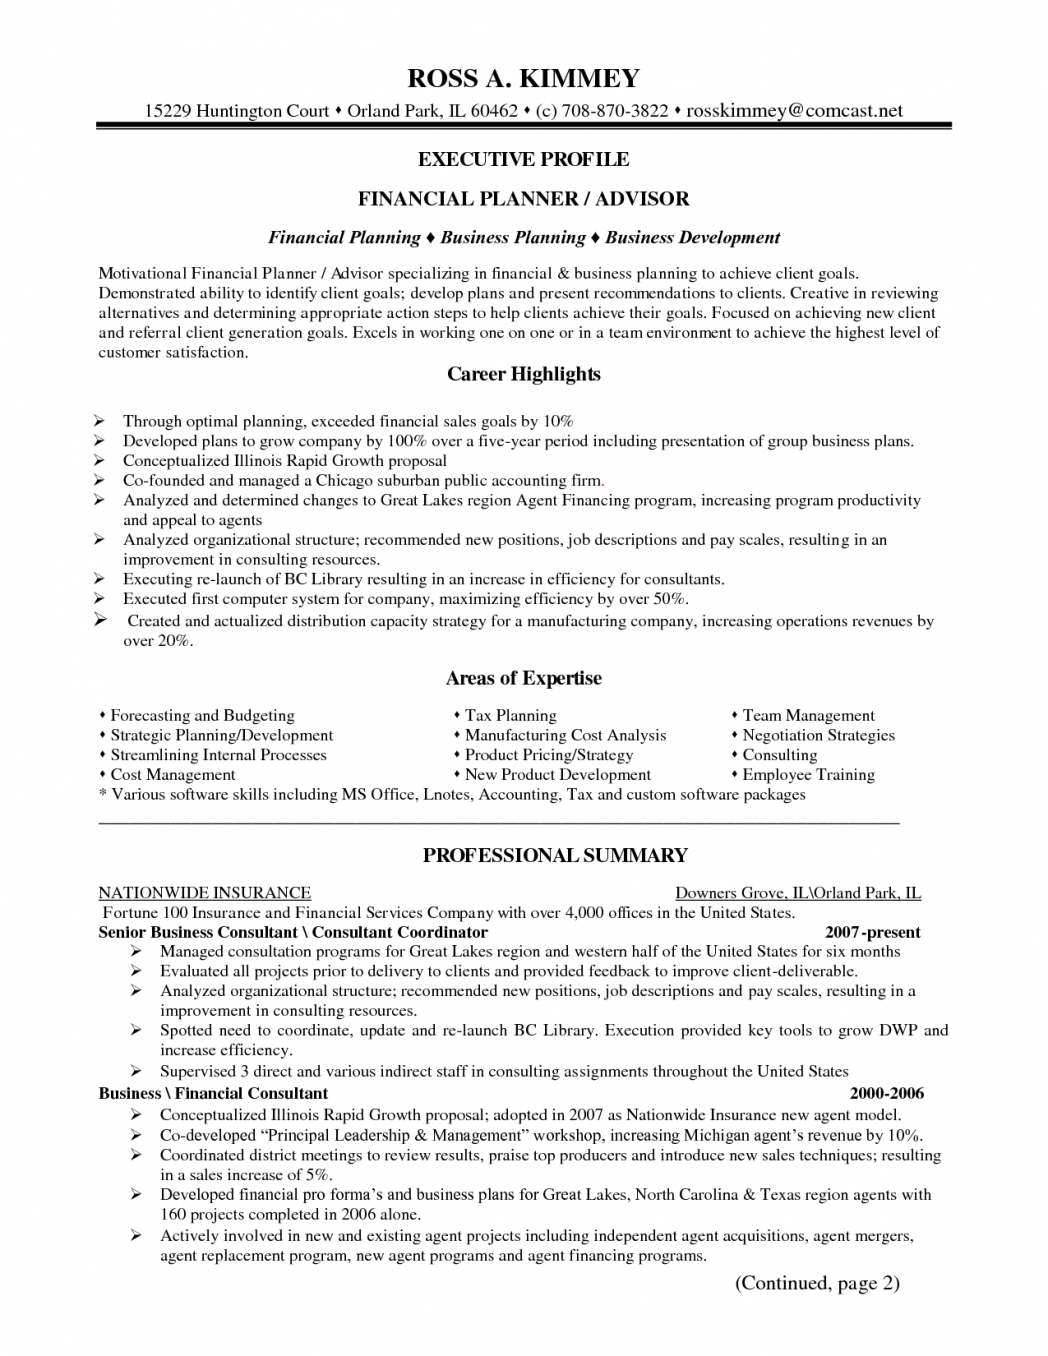 financial planning for business plan template